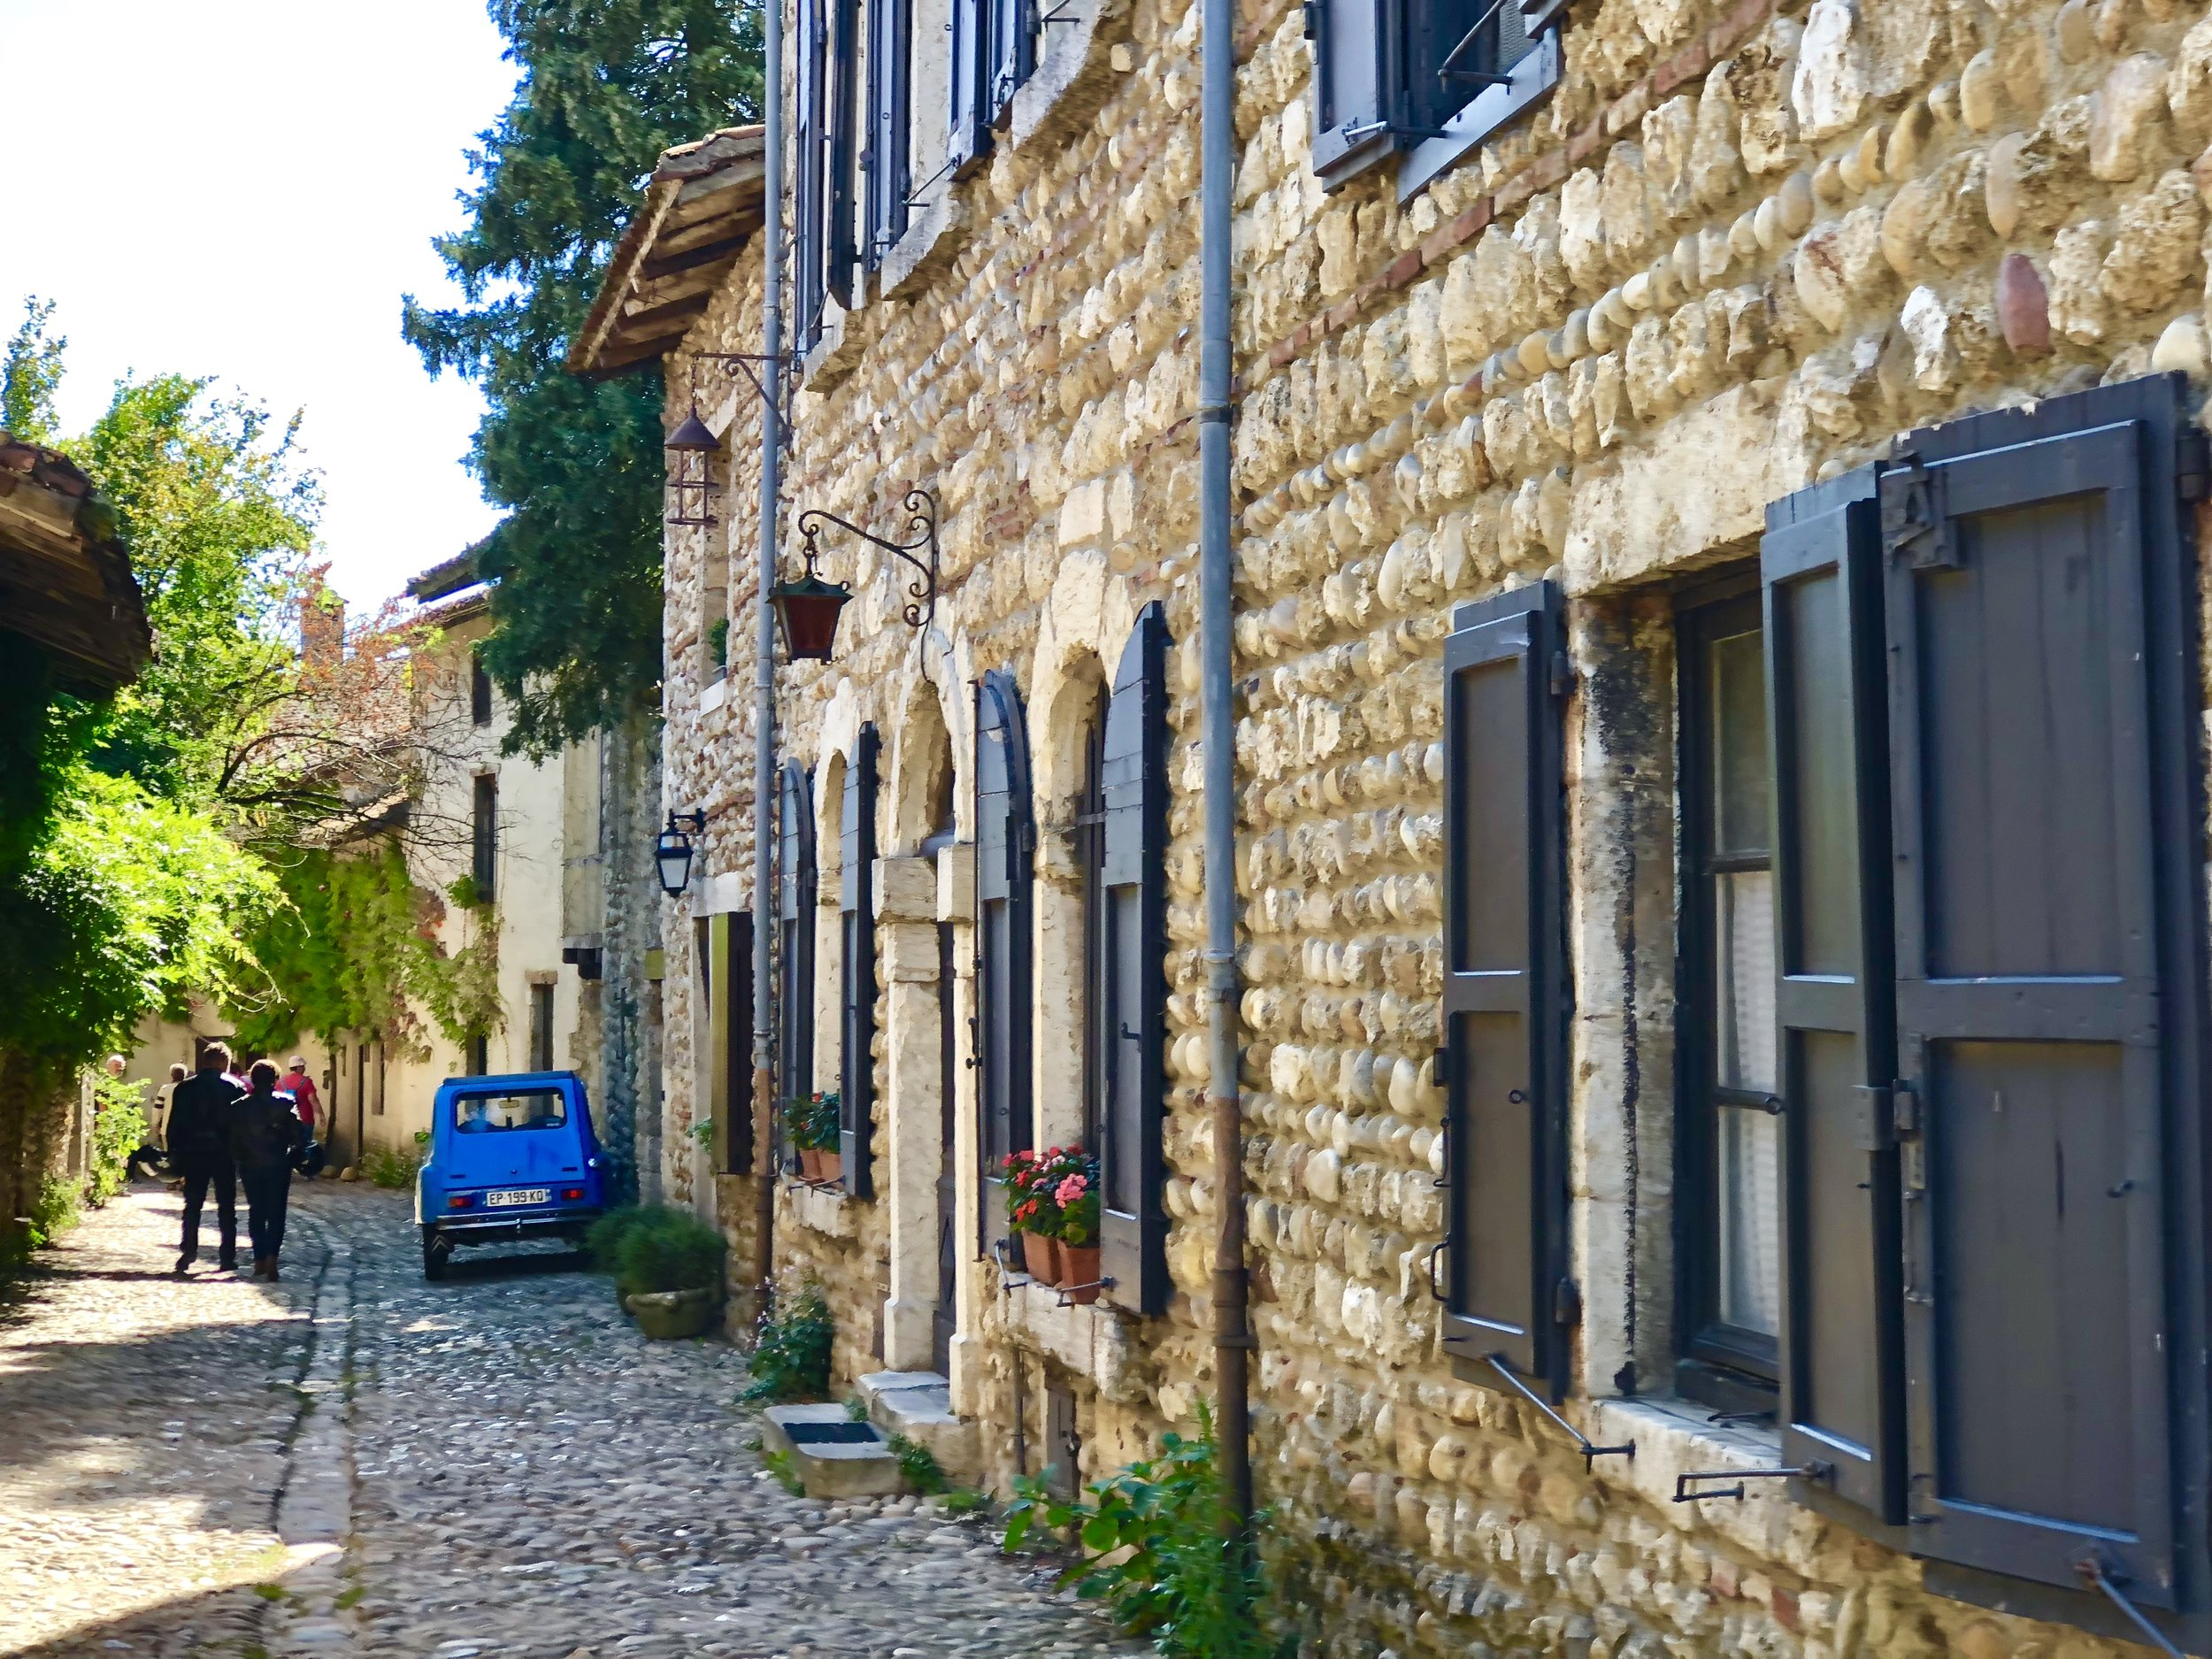 A street in the medieval-era village of Pérouges, Ain, France